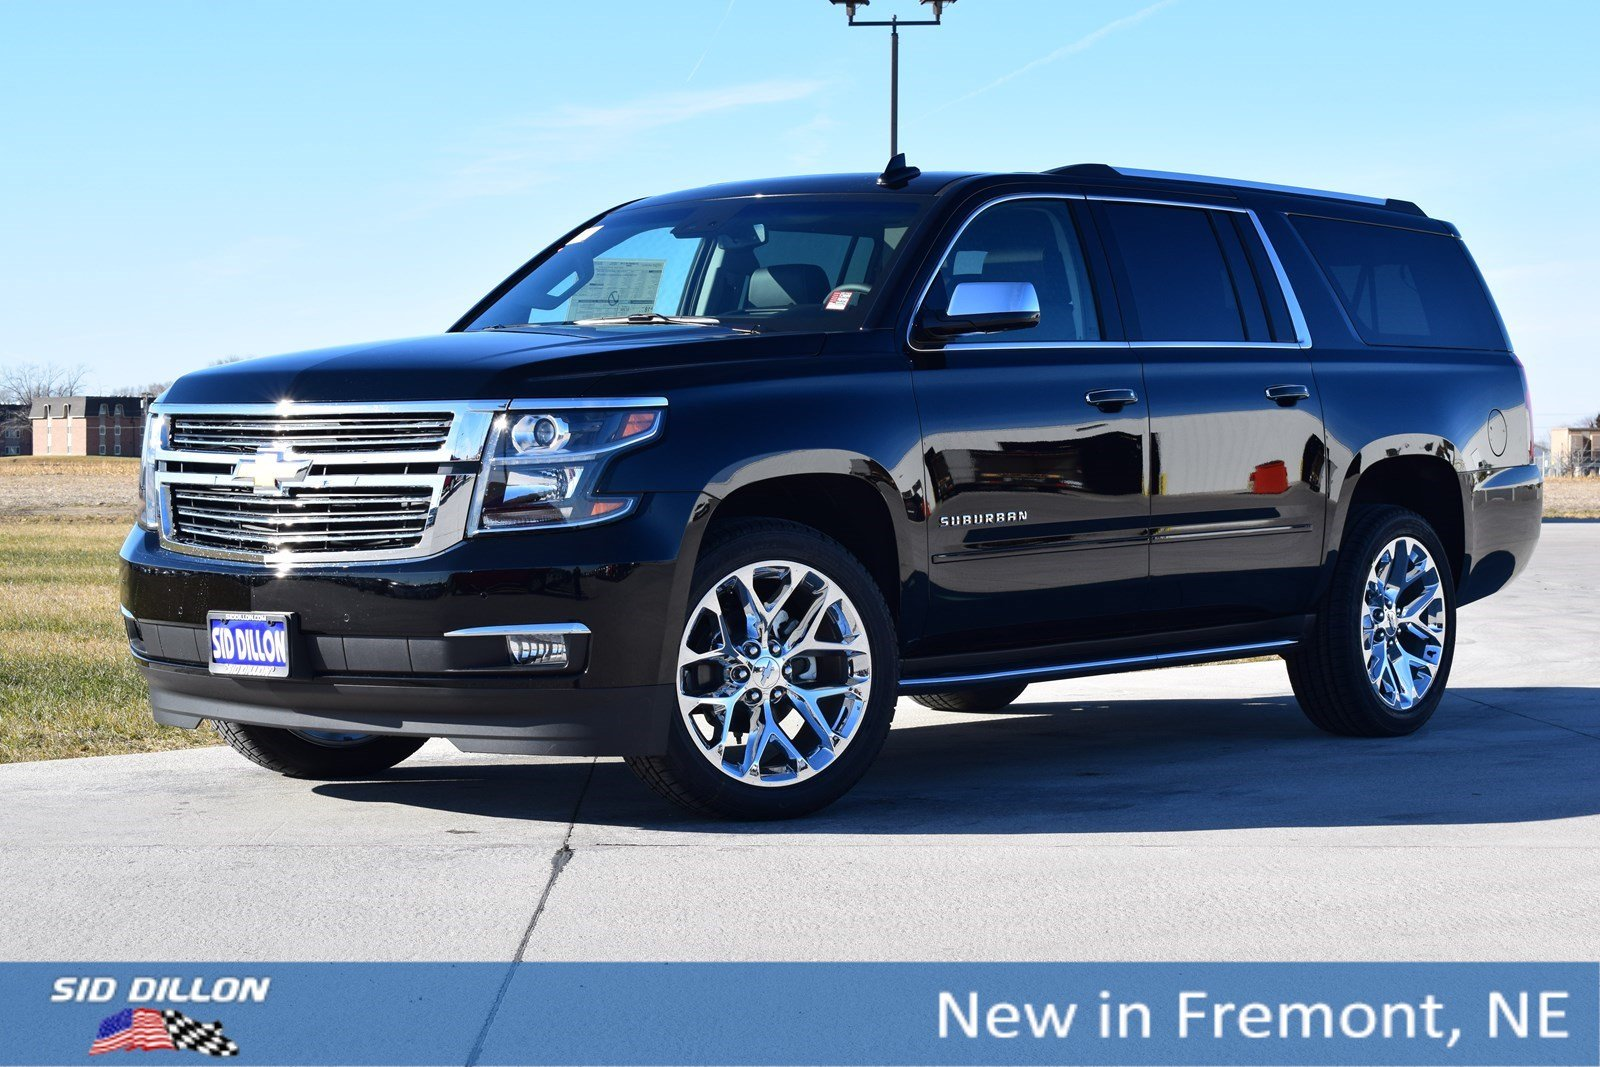 Premier Auto Group >> New 2018 Chevrolet Suburban Premier SUV in Fremont #1T18671 | Sid Dillon Auto Group